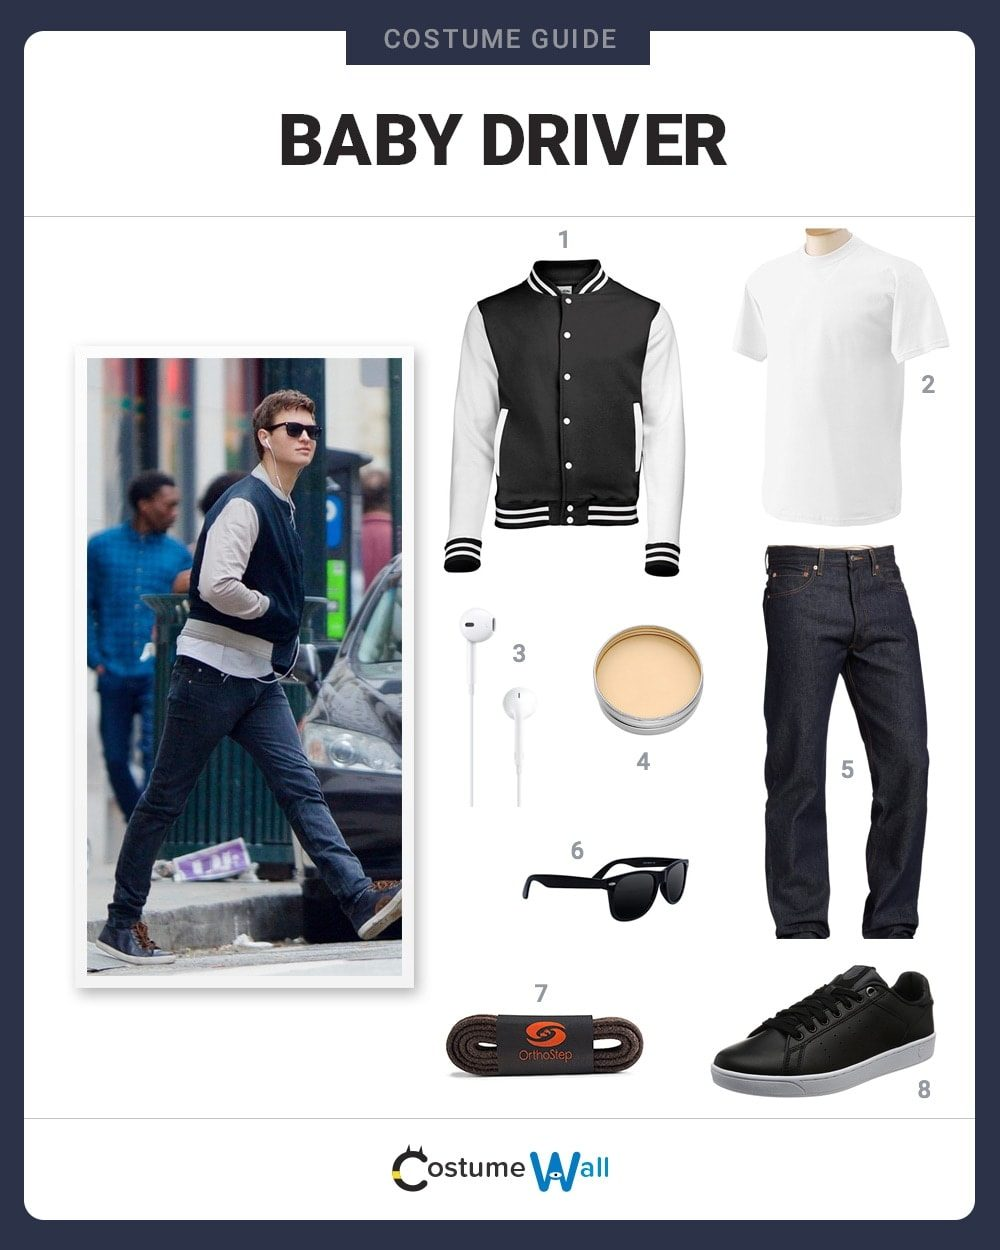 Baby Driver Costume Guide